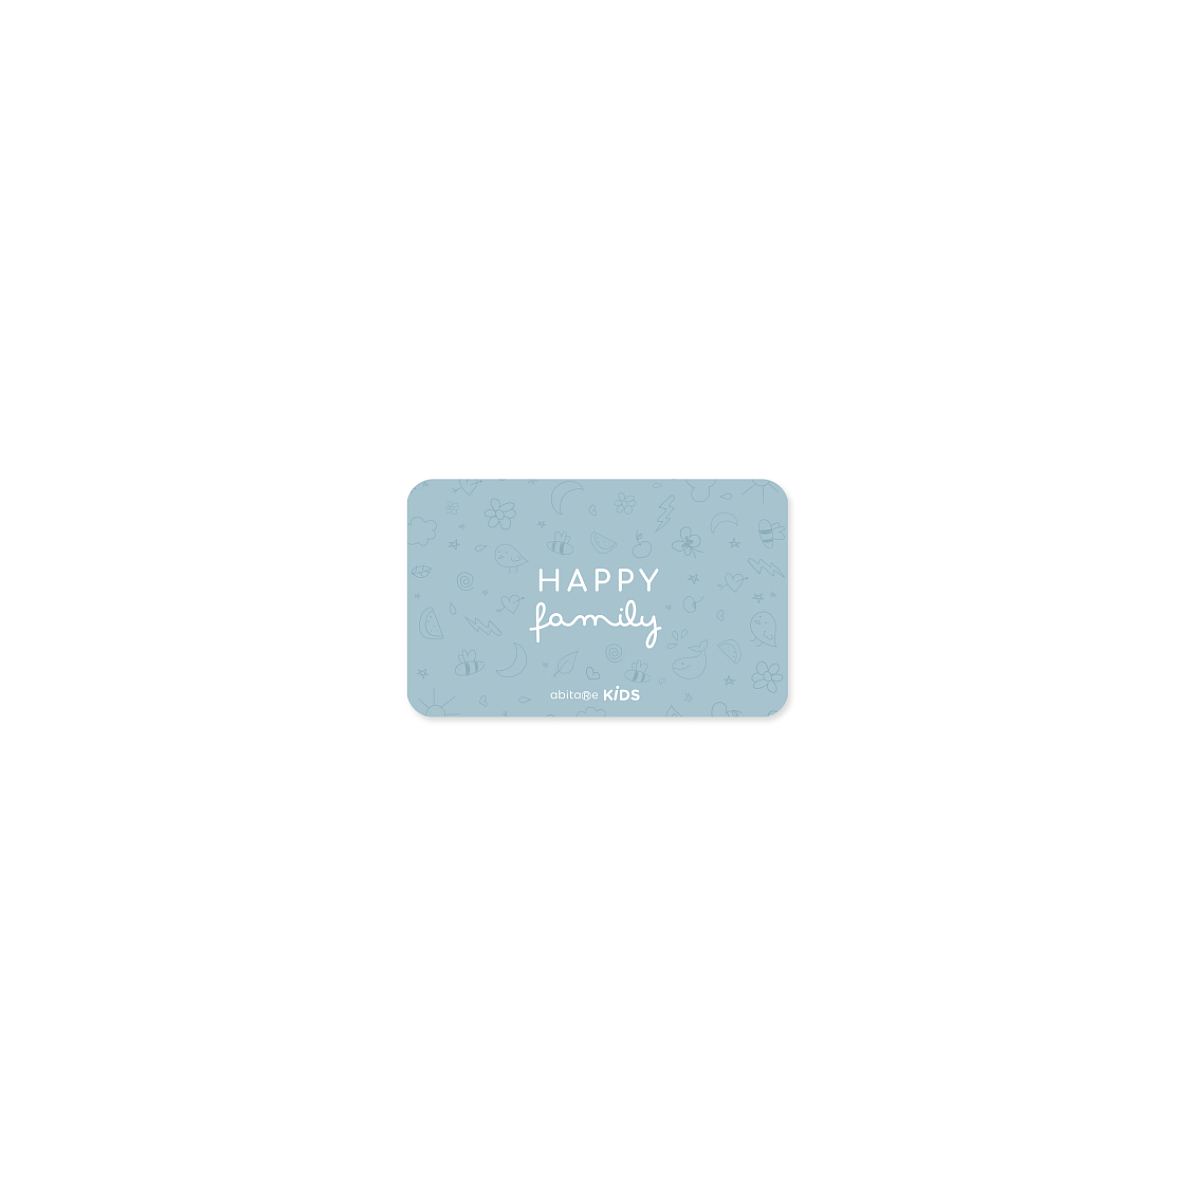 Happy Family Member Card LUX